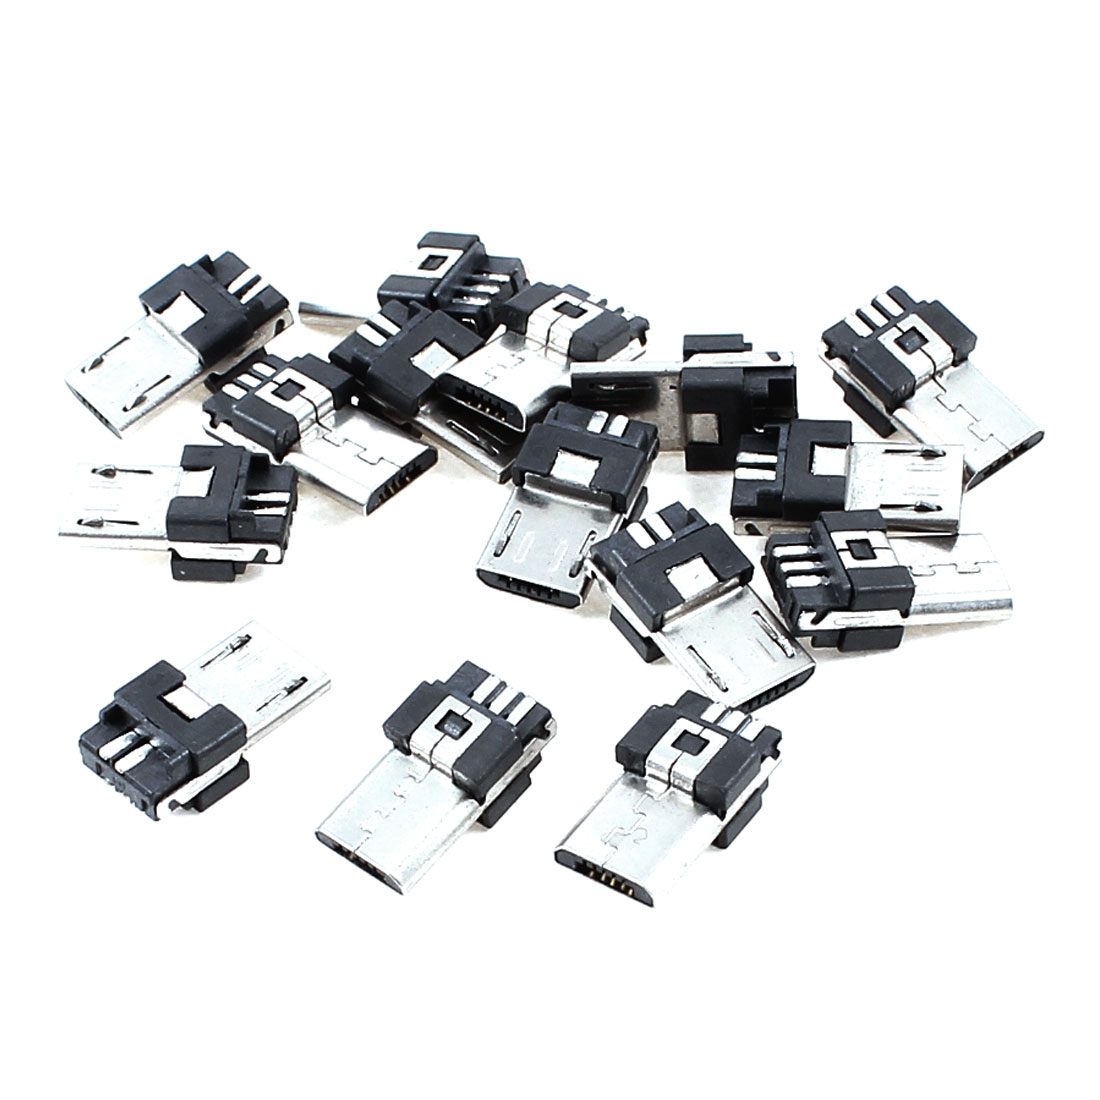 Office Micro USB B 5 Pin Type Male Jack Connector Solder Mount Adapter 15pcs